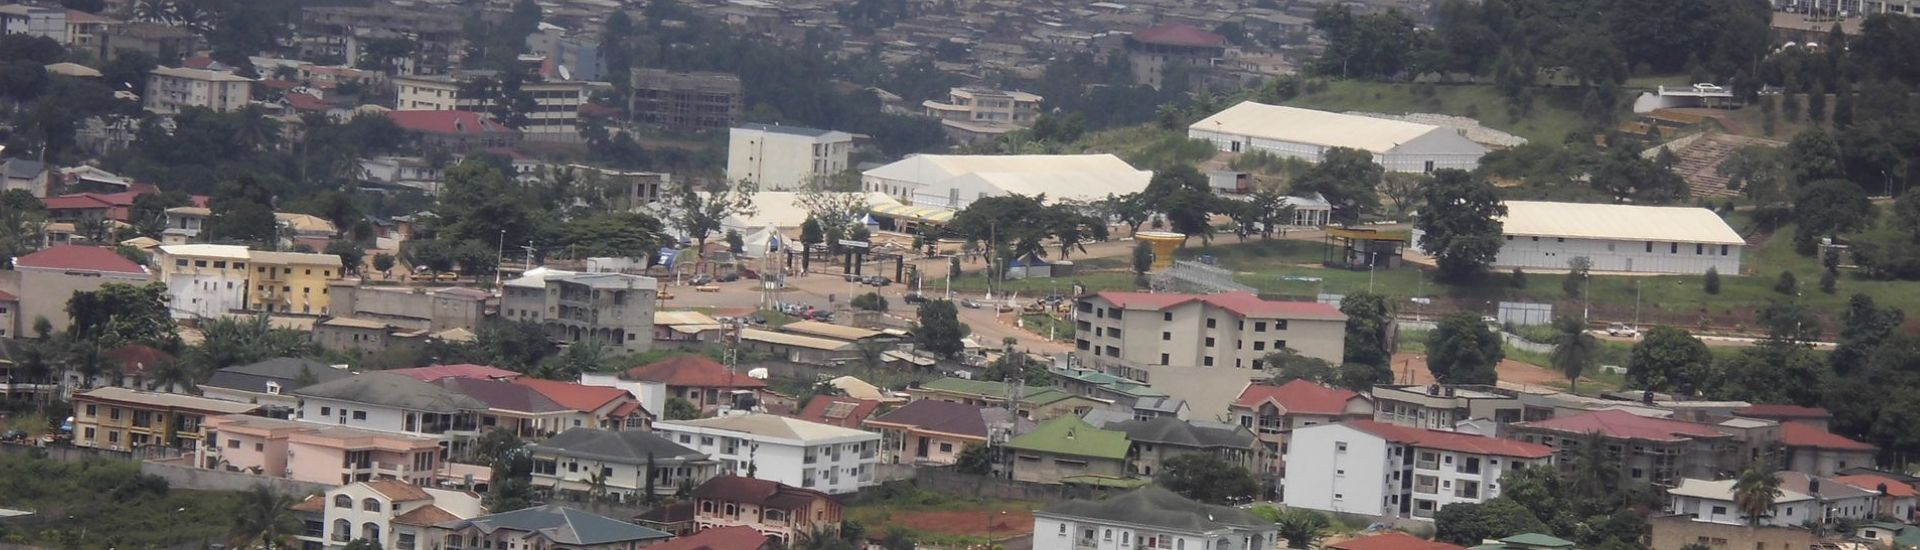 A view of Yaounde from Mount Febe, one of the 7 hills of the Cameroonian capital